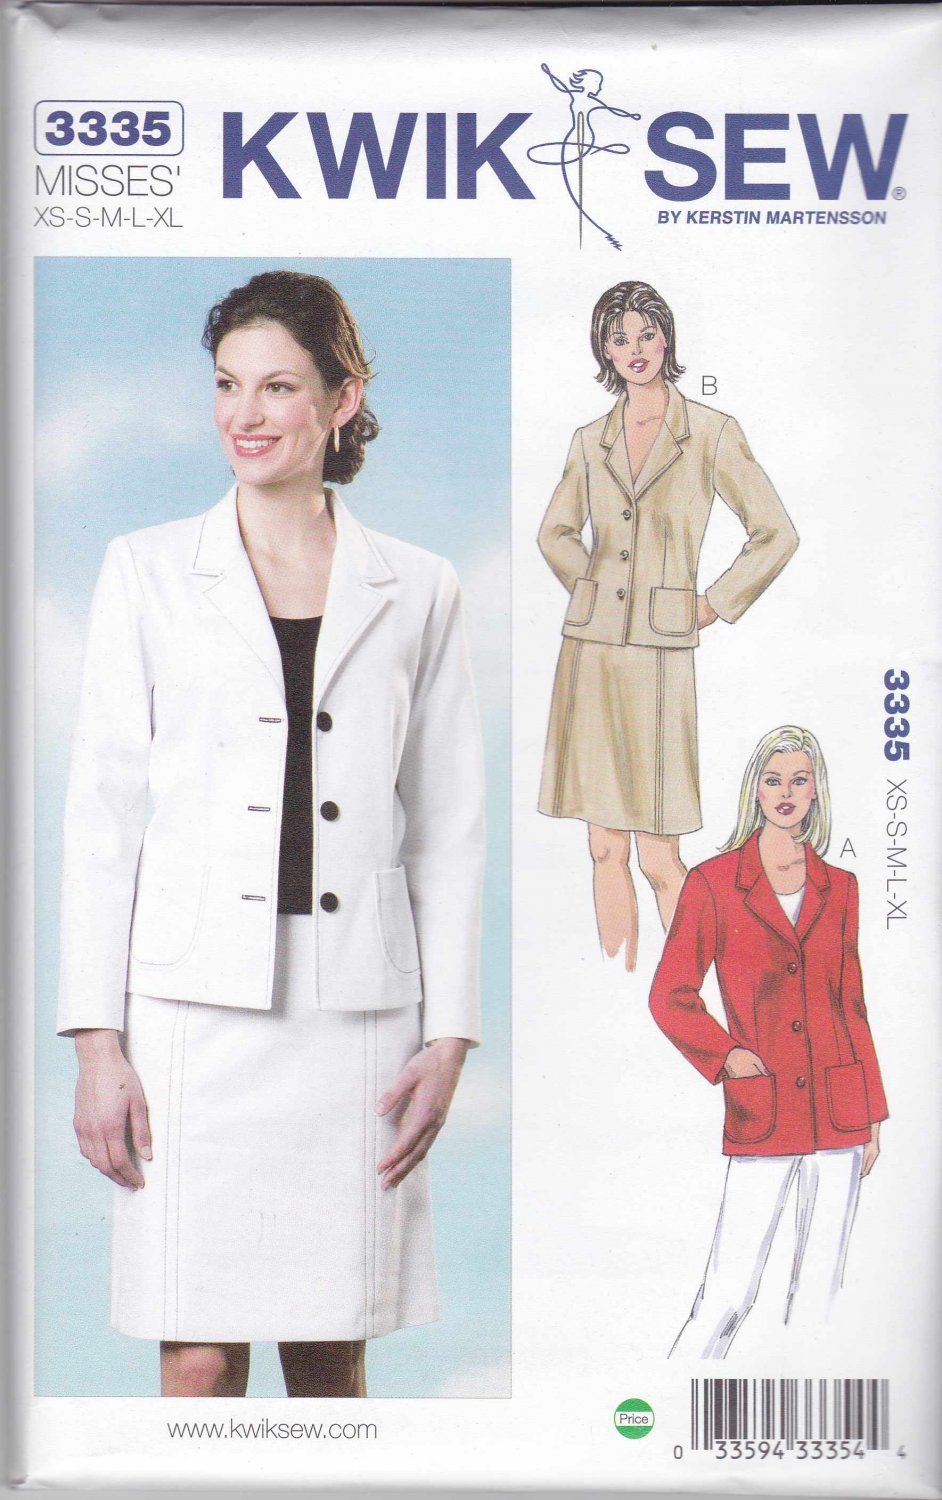 Kwik Sew Sewing Pattern 3335 Misses Sizes XS-XL (approx 6-22) Button Front Jackets A-line Skirt